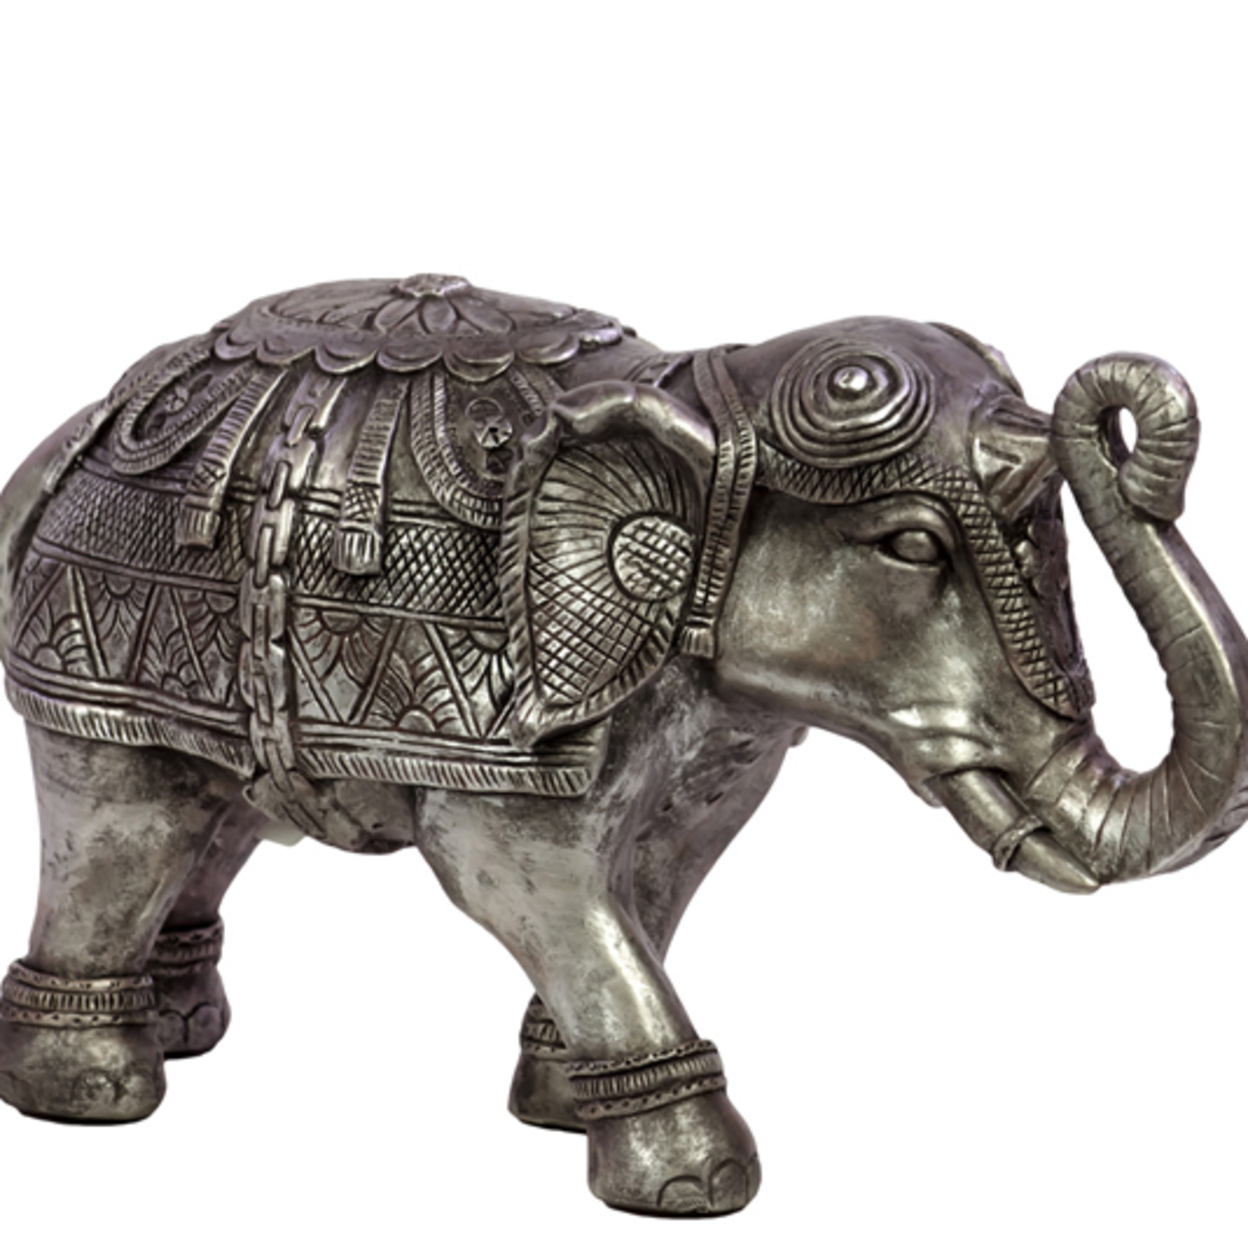 Beautifully Decorated Resin Elephant Figurine in Silver Small 58995208c98fc433fa23267c